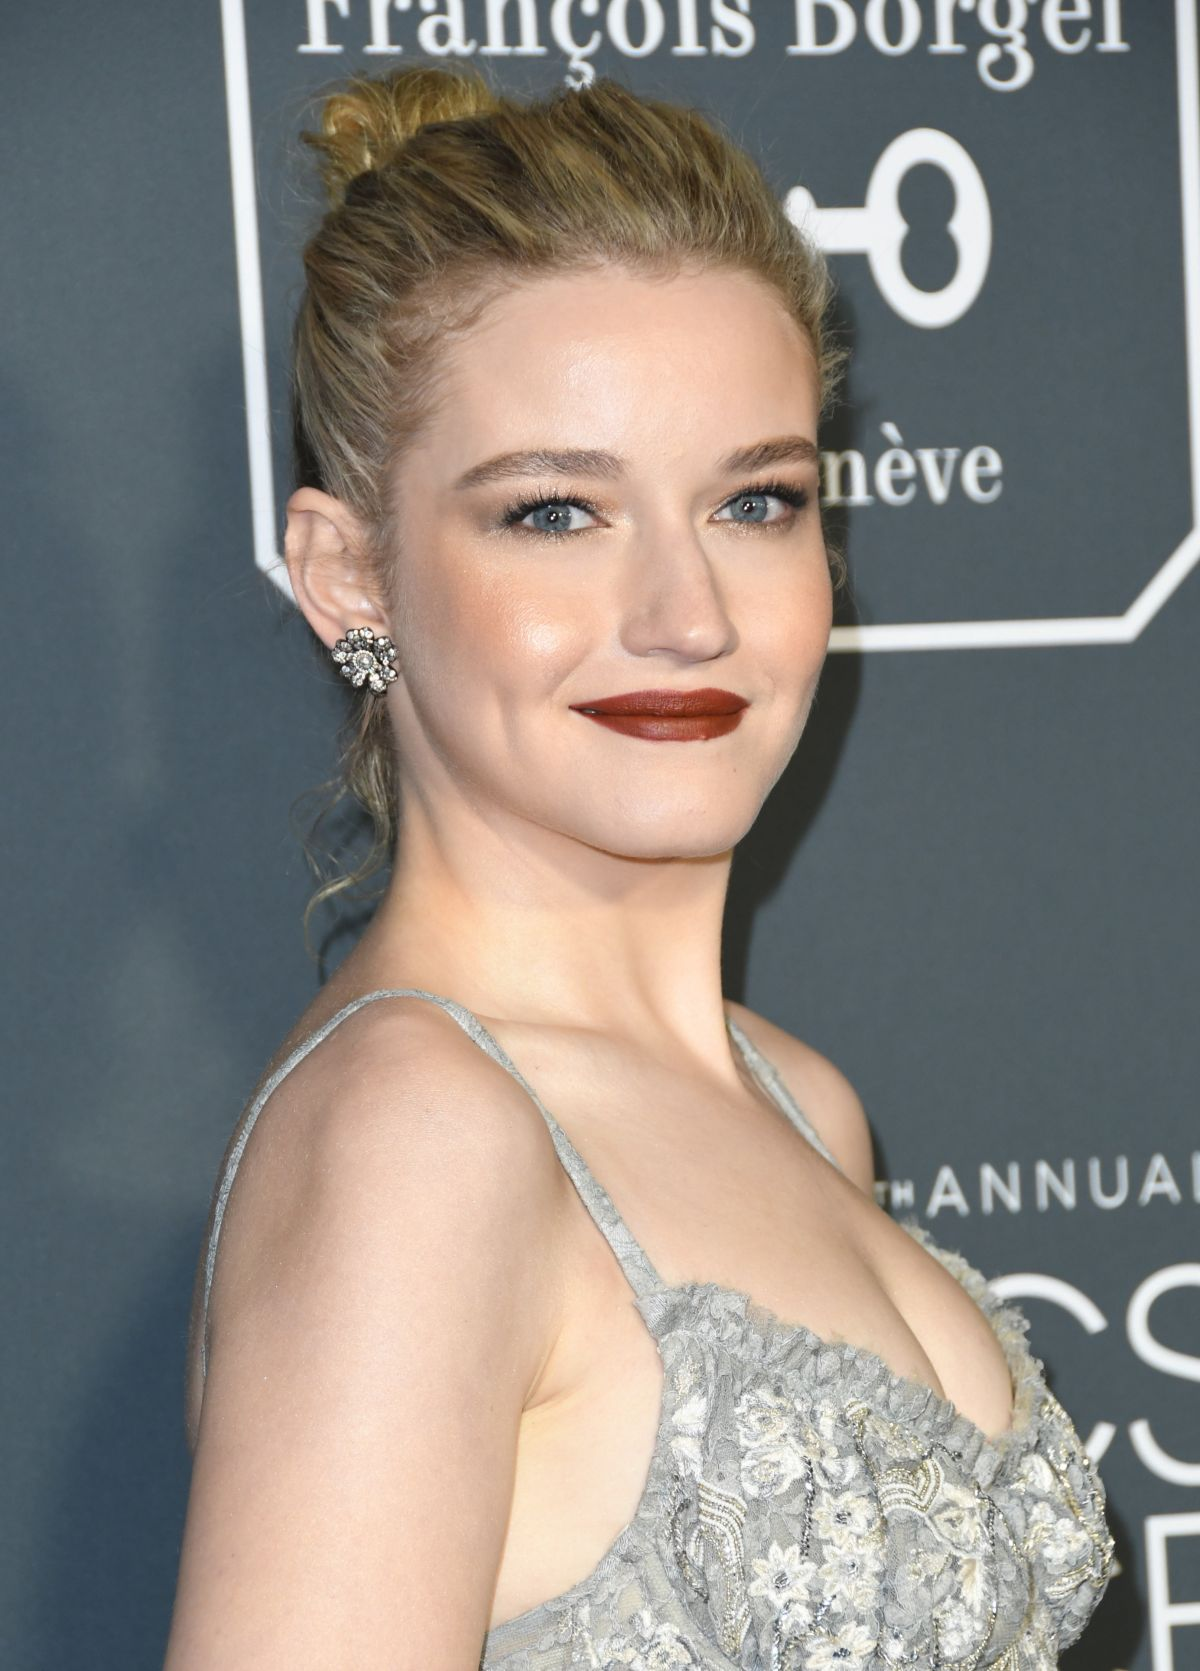 Julia Garner: JULIA GARNER At 2019 Critics' Choice Awards In Santa